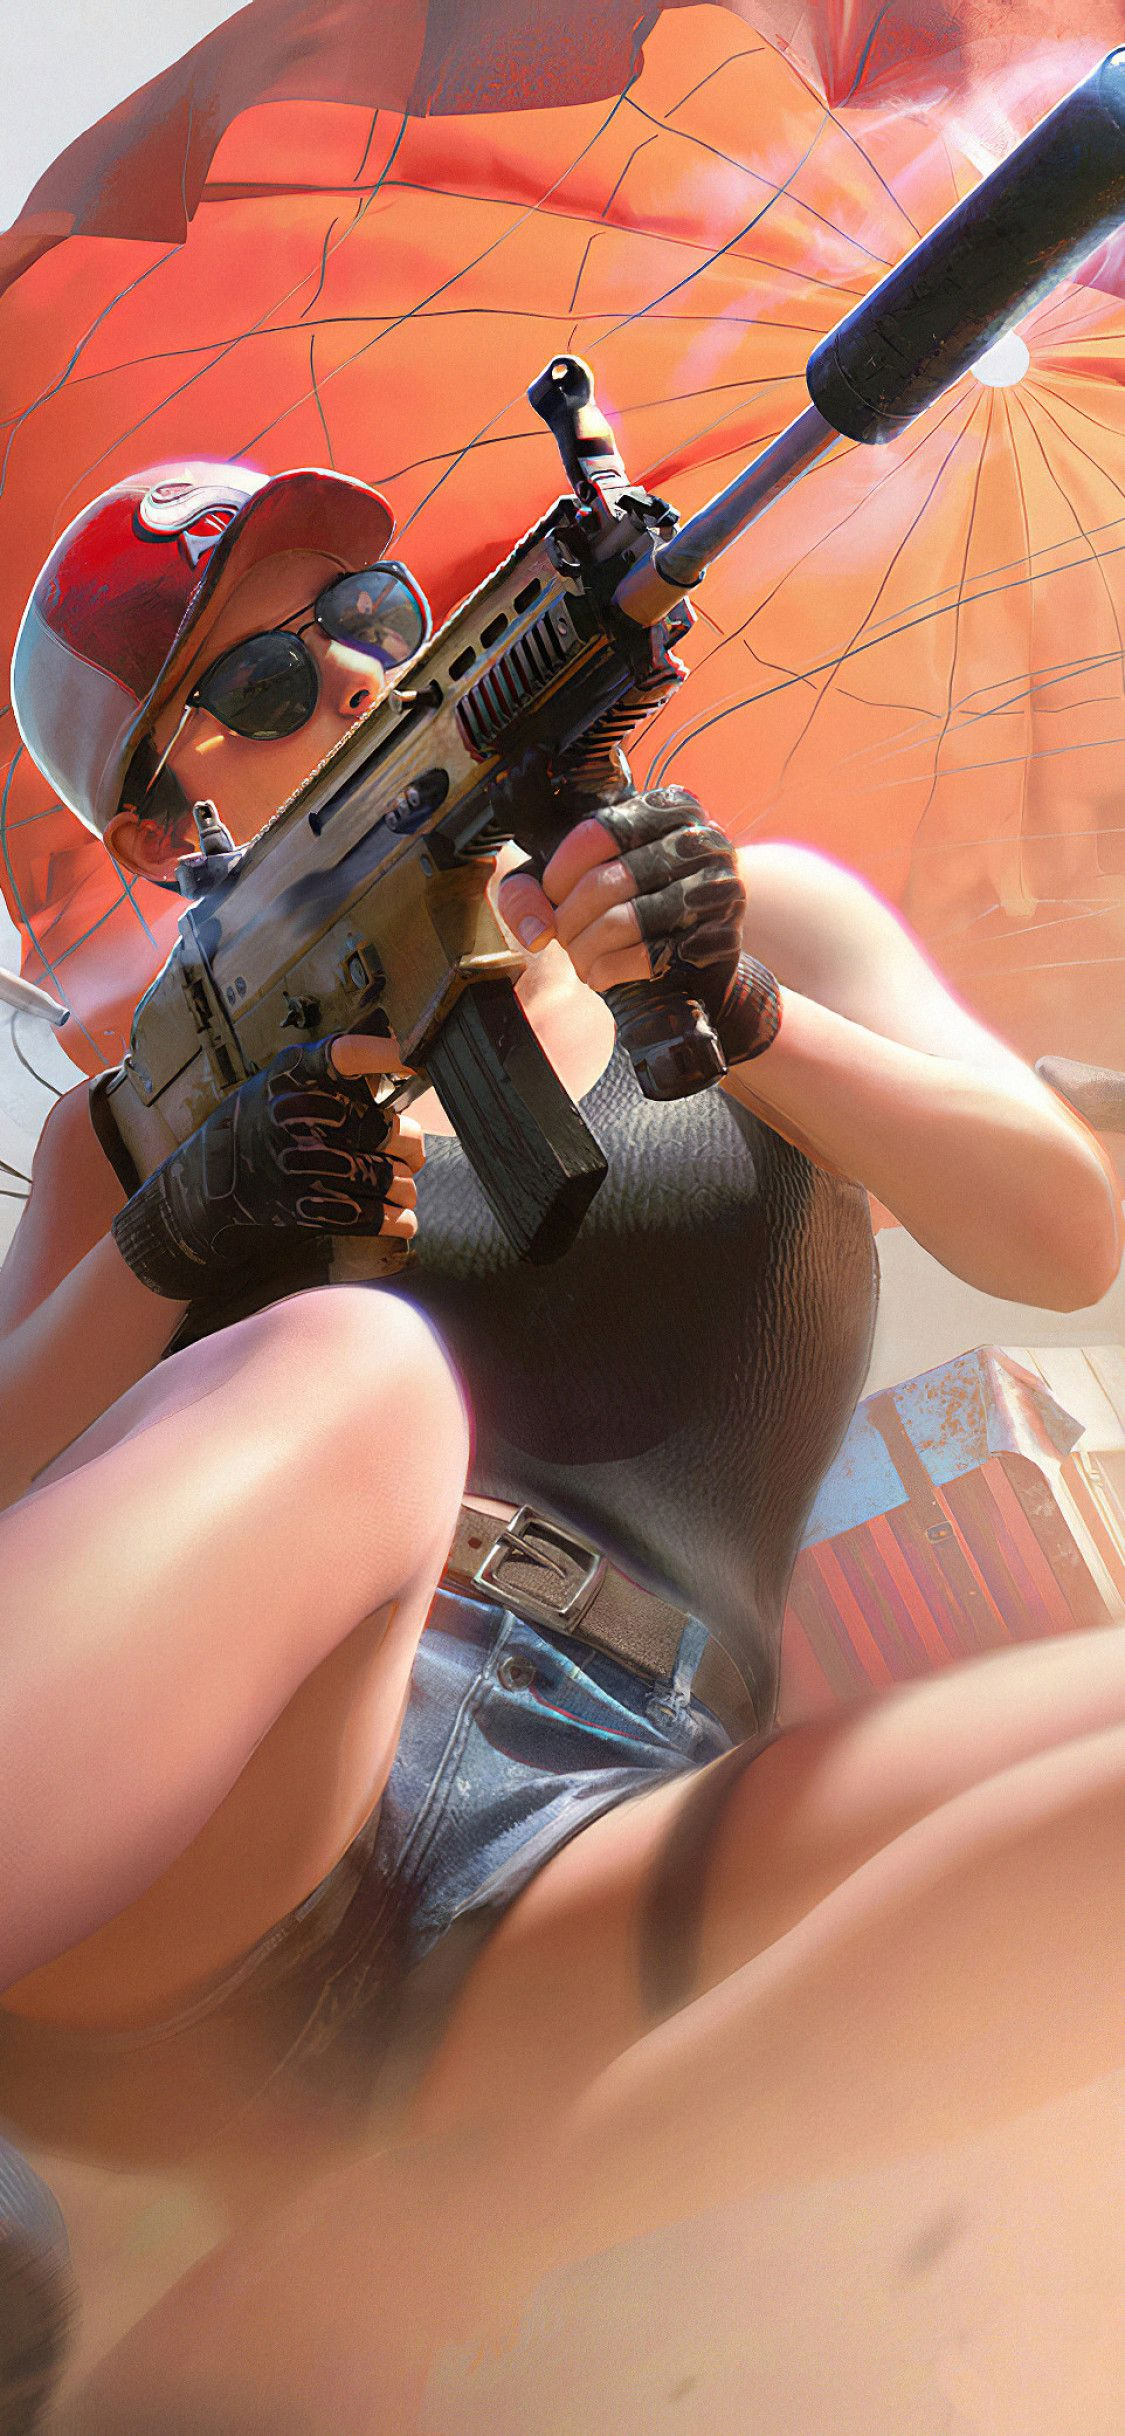 Pubg IPhone Backgrounds Cool backgrounds in 2020 Girl